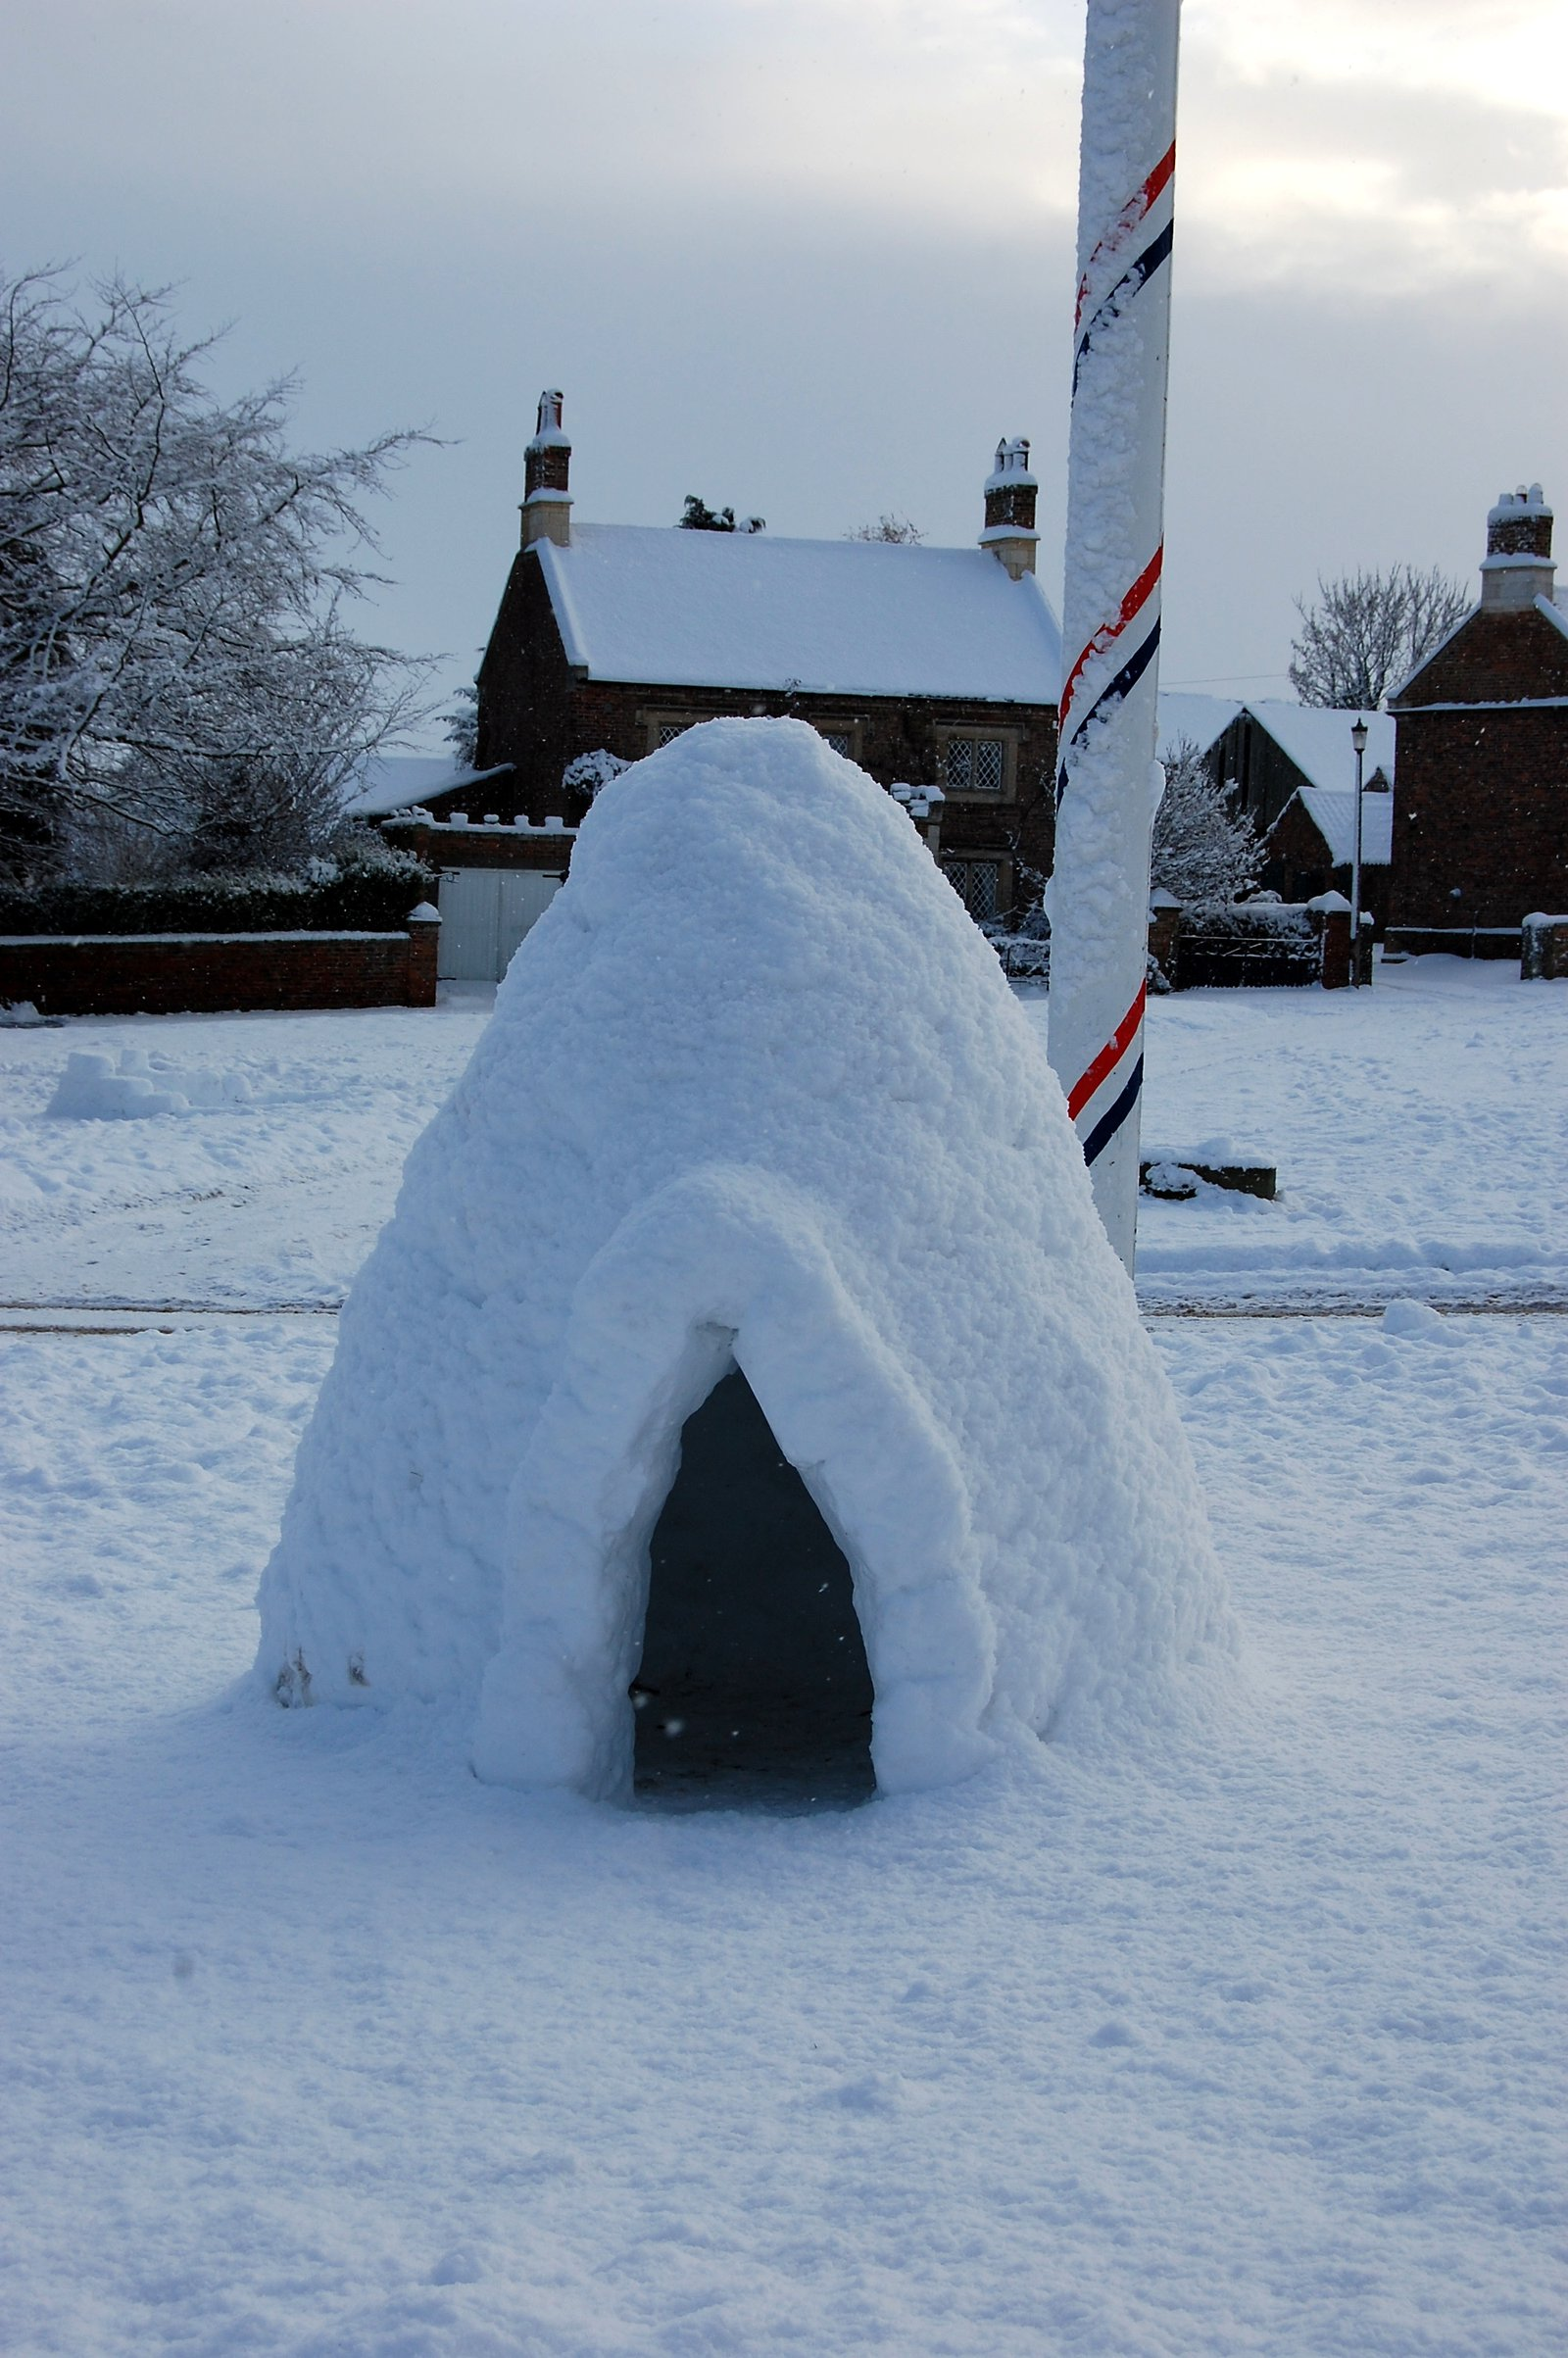 An igloo in North Yorkshire